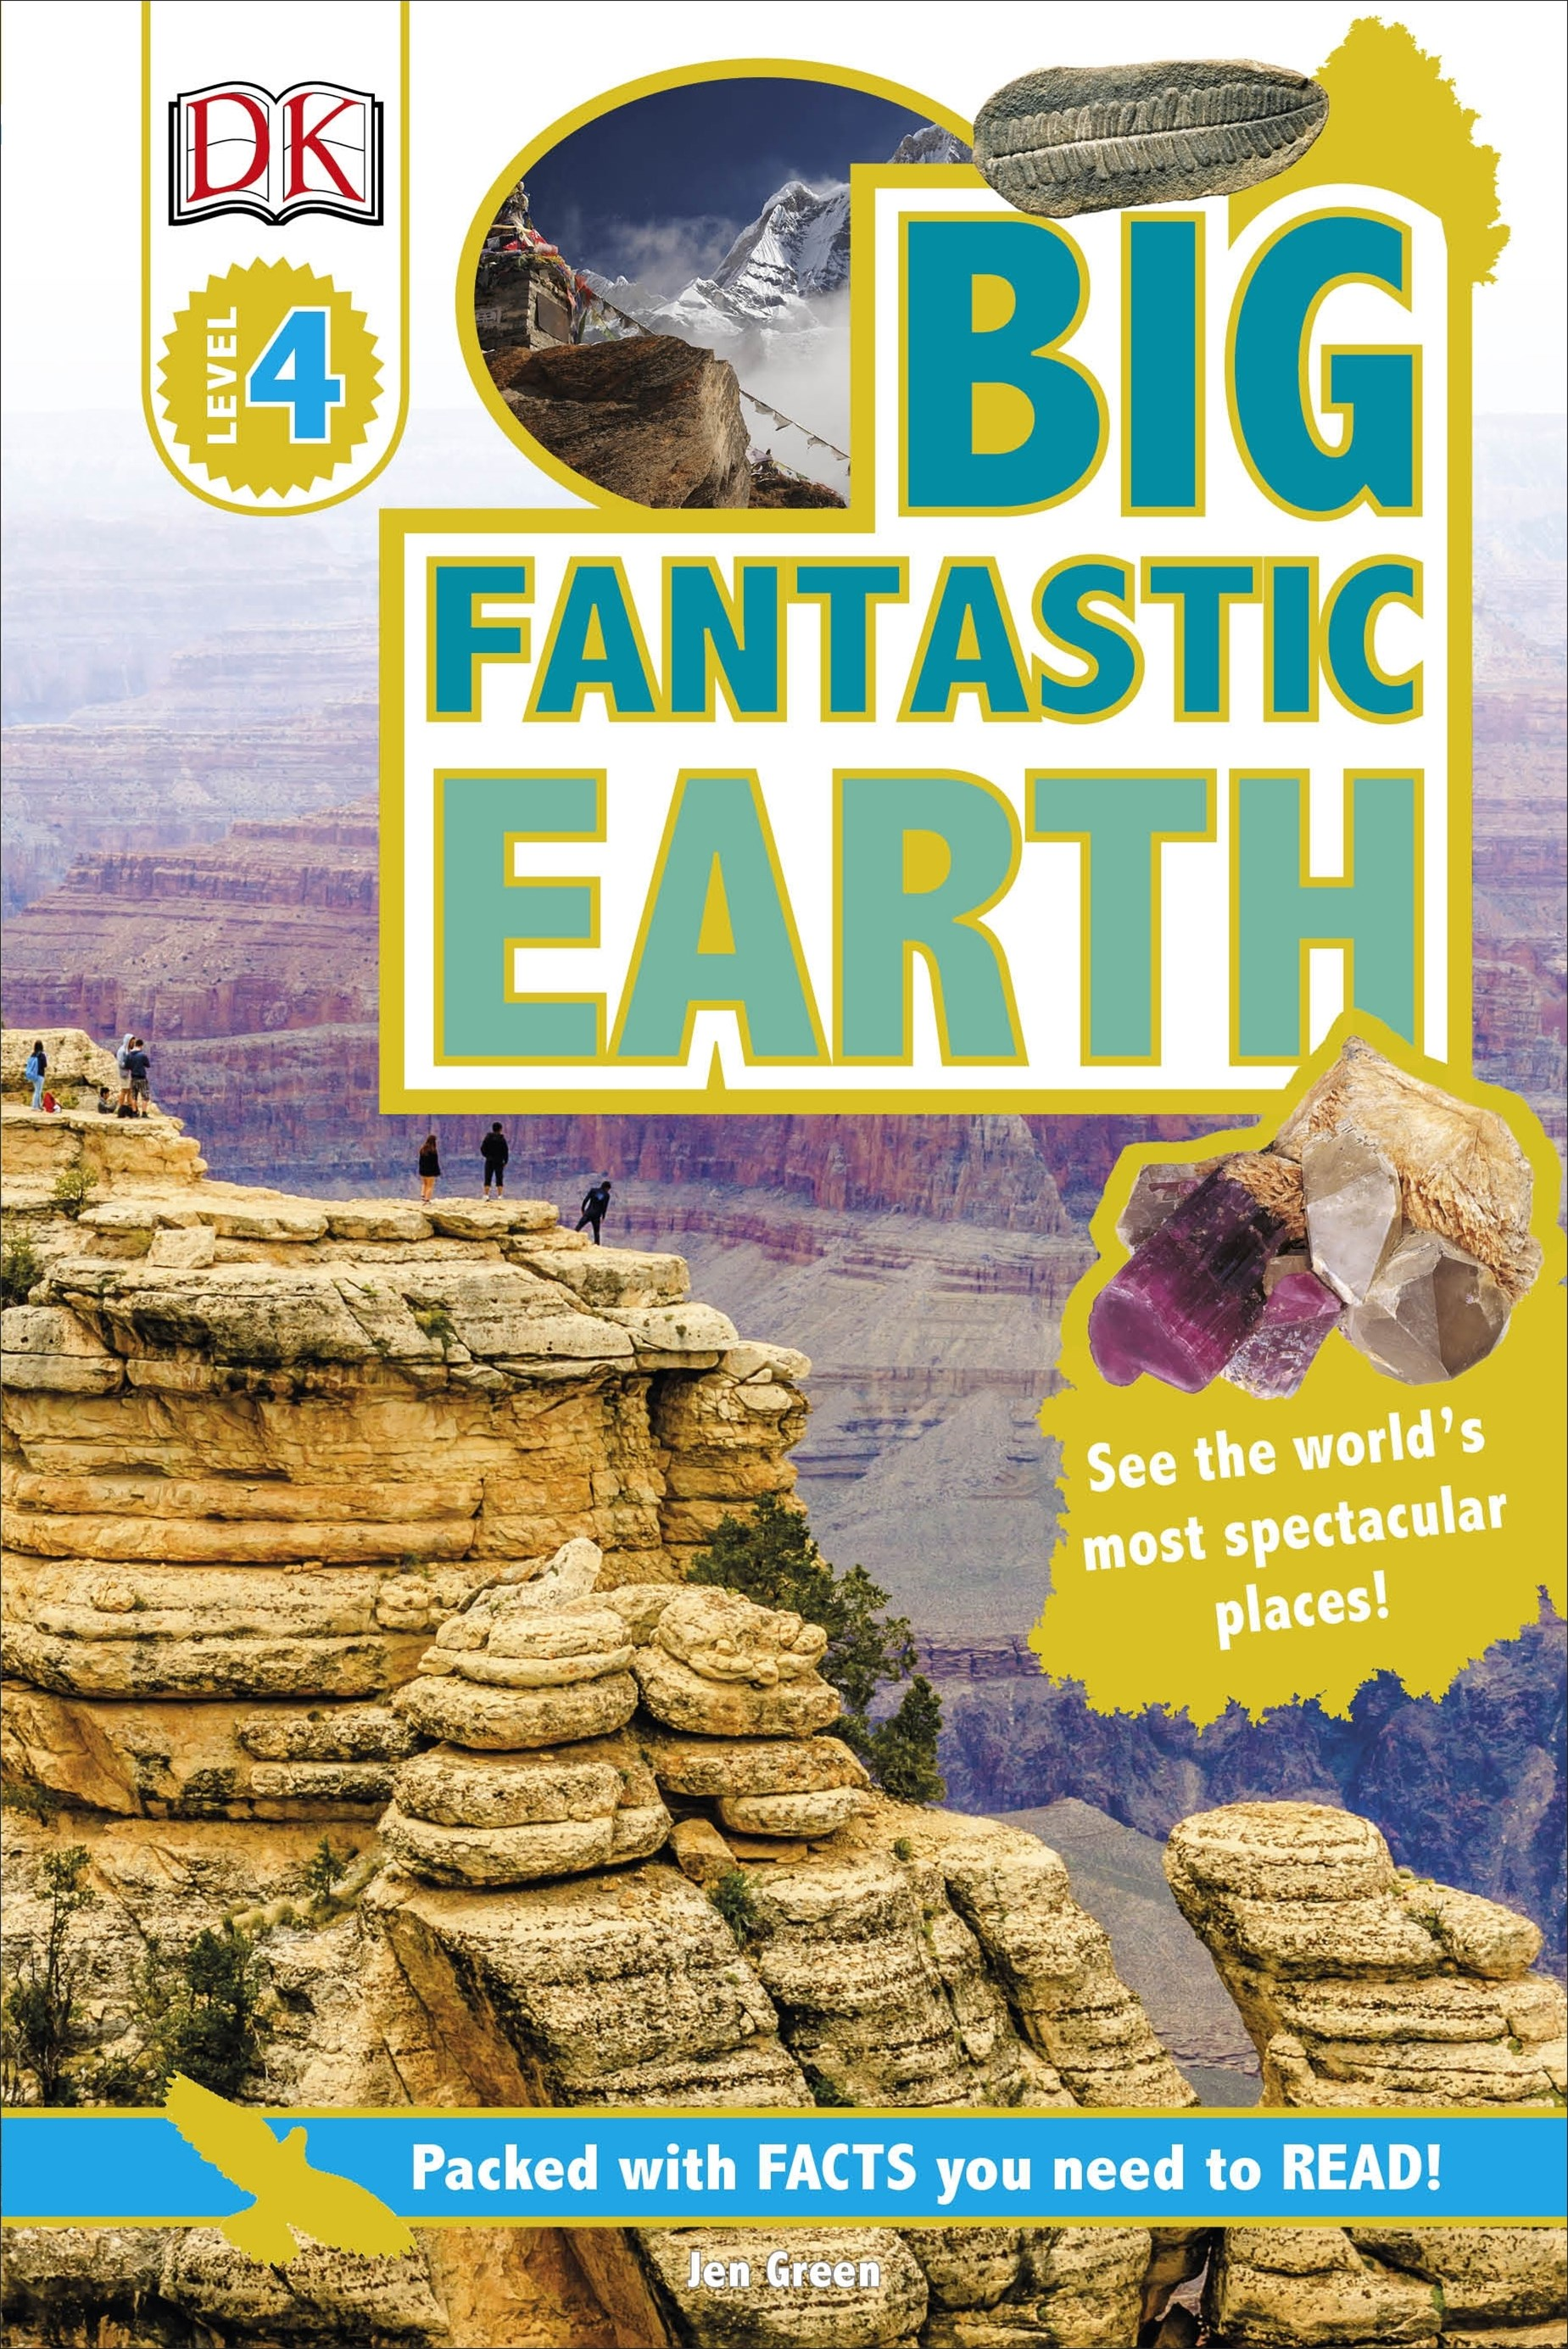 DK Reader: Big Fantastic Earth